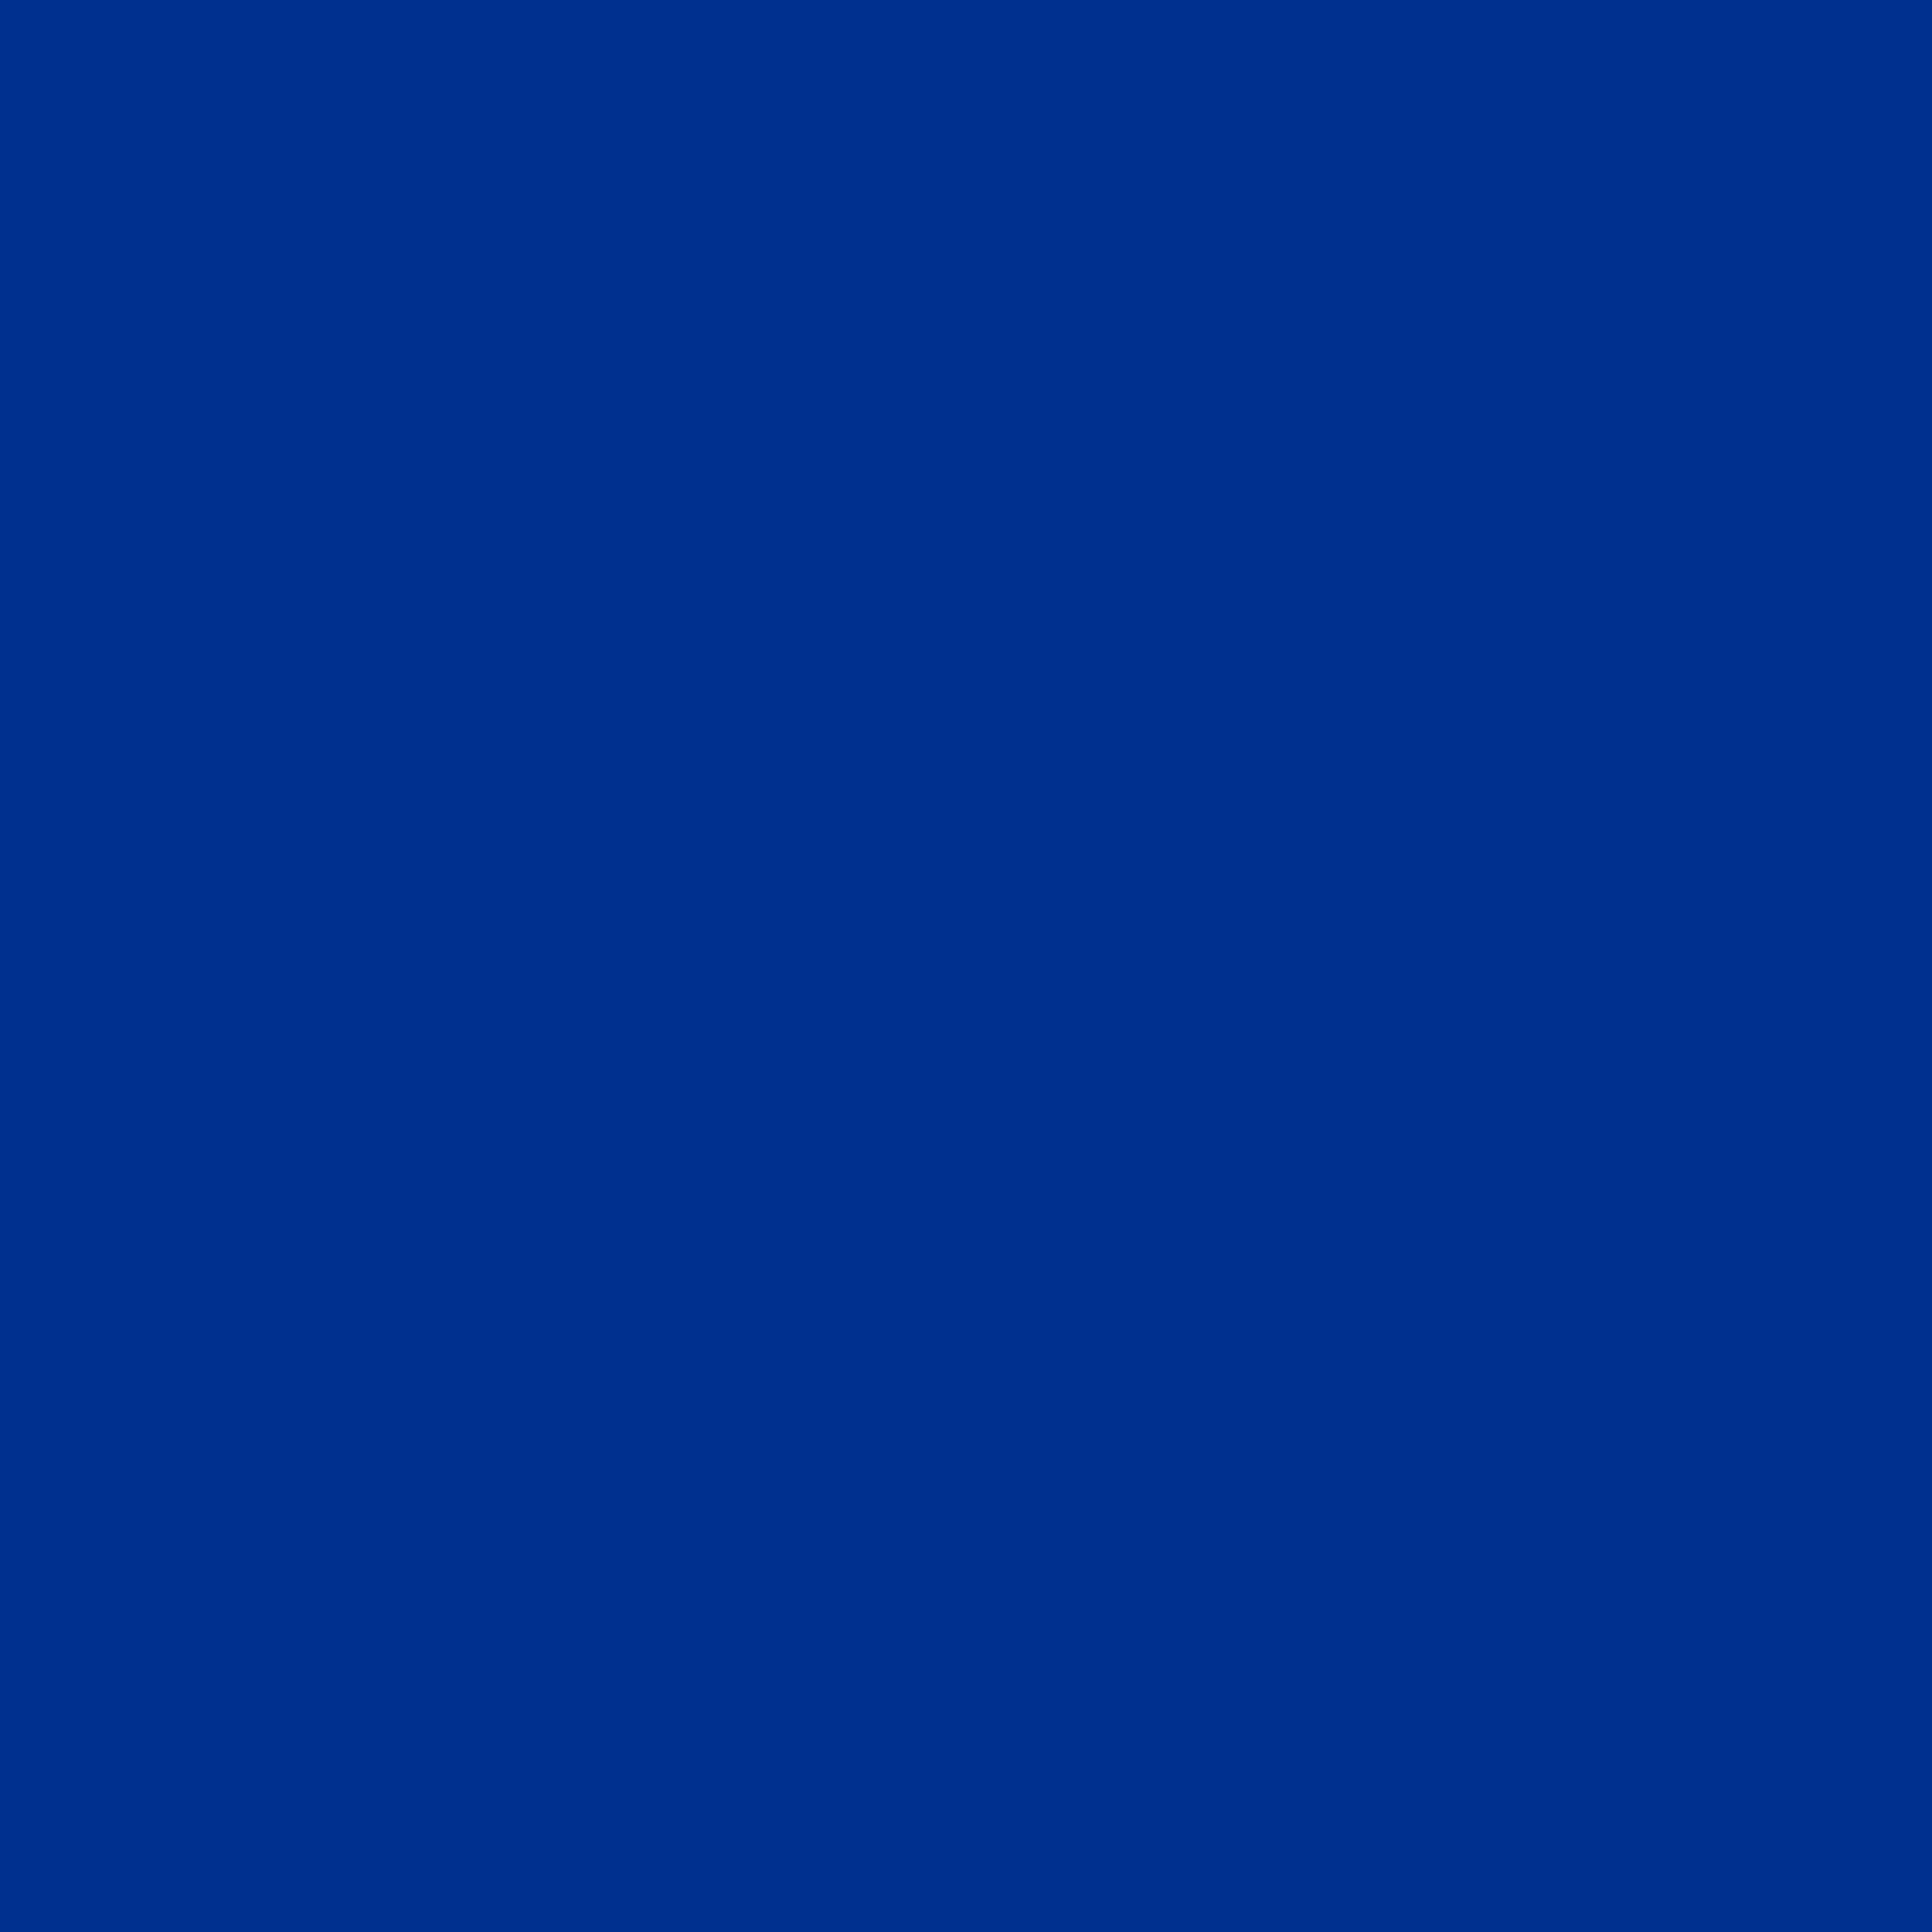 2732x2732 Air Force Dark Blue Solid Color Background